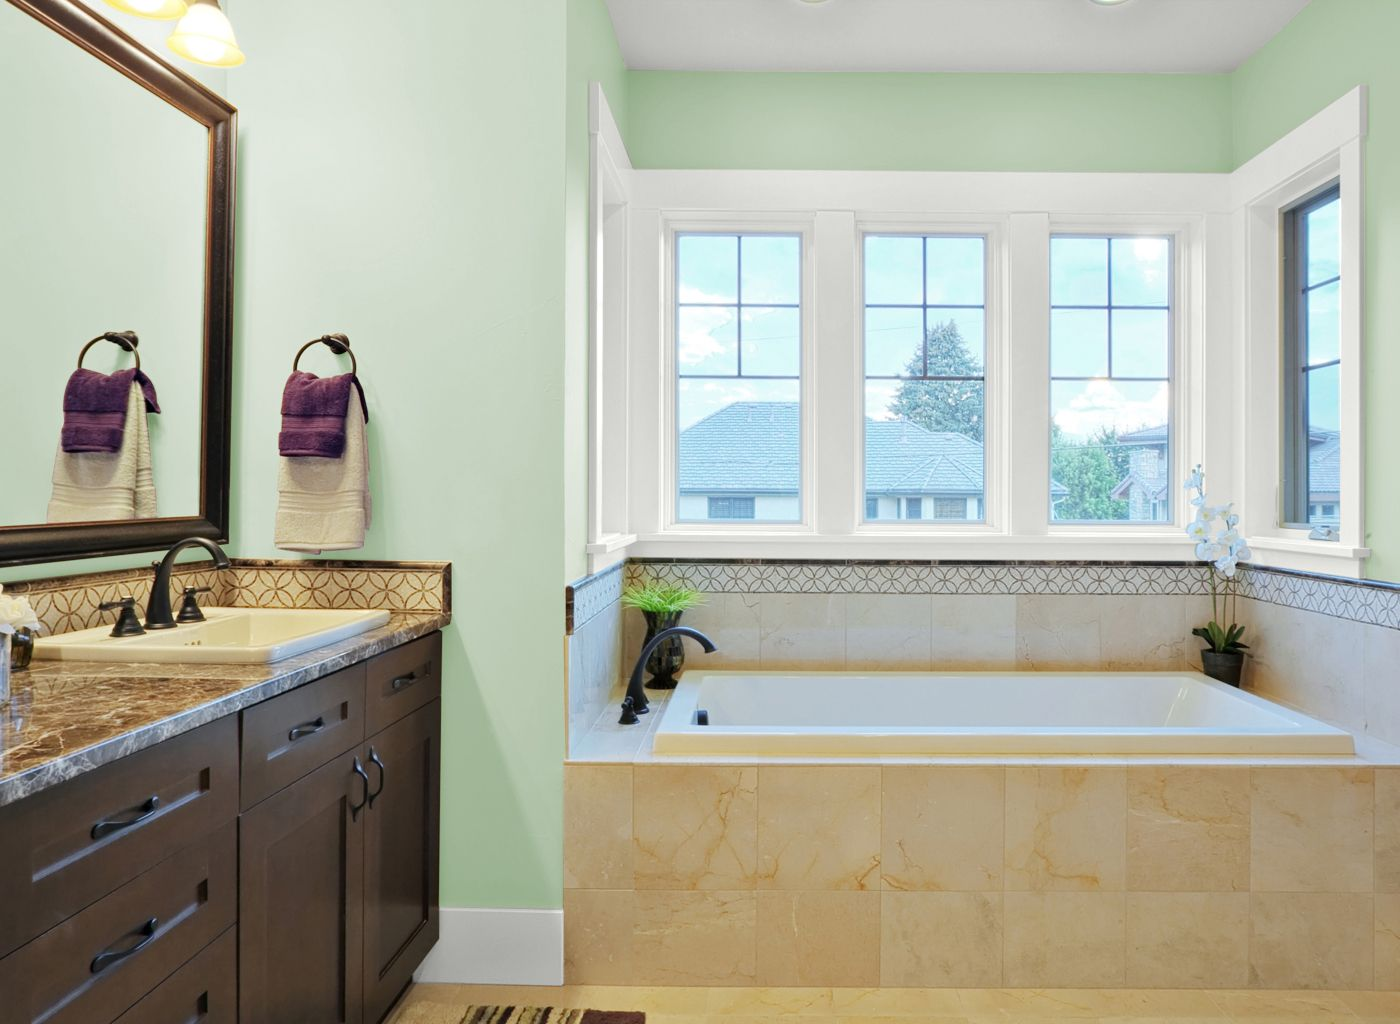 Bathroom color ideas green - Bathroom In Italianate Villa Green